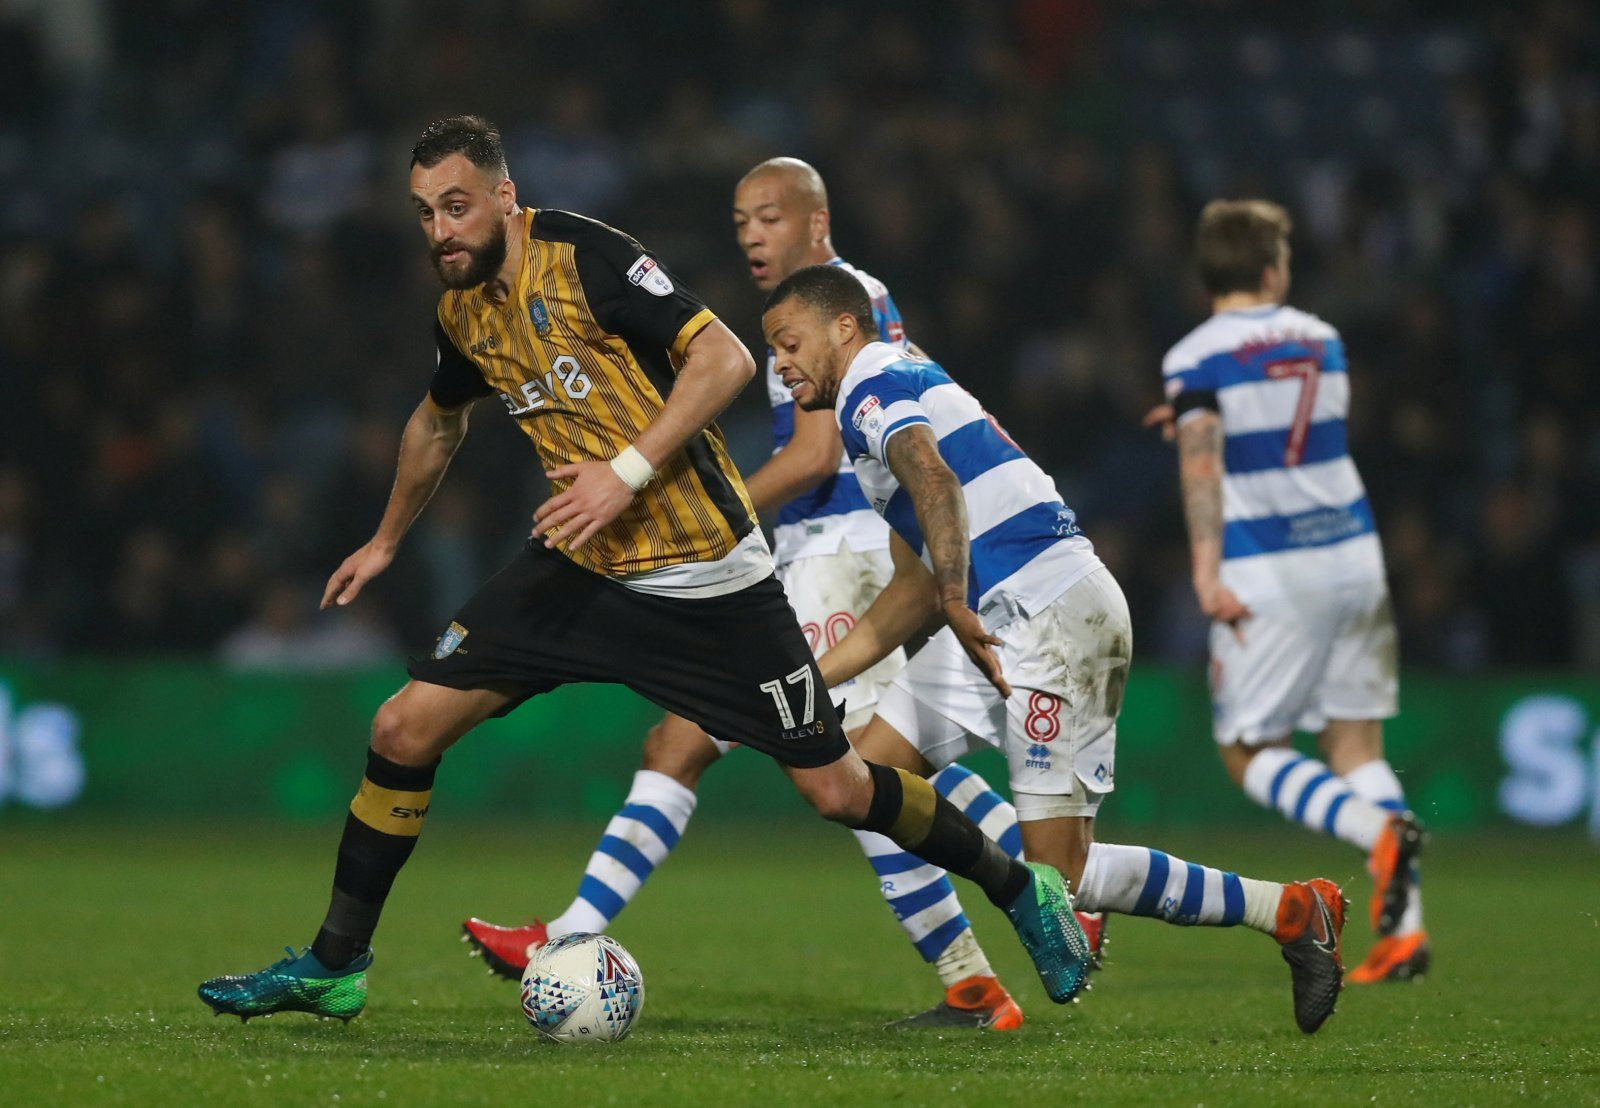 Sheffield Wednesday: Fans predict big things for Atdhe Nuhiu